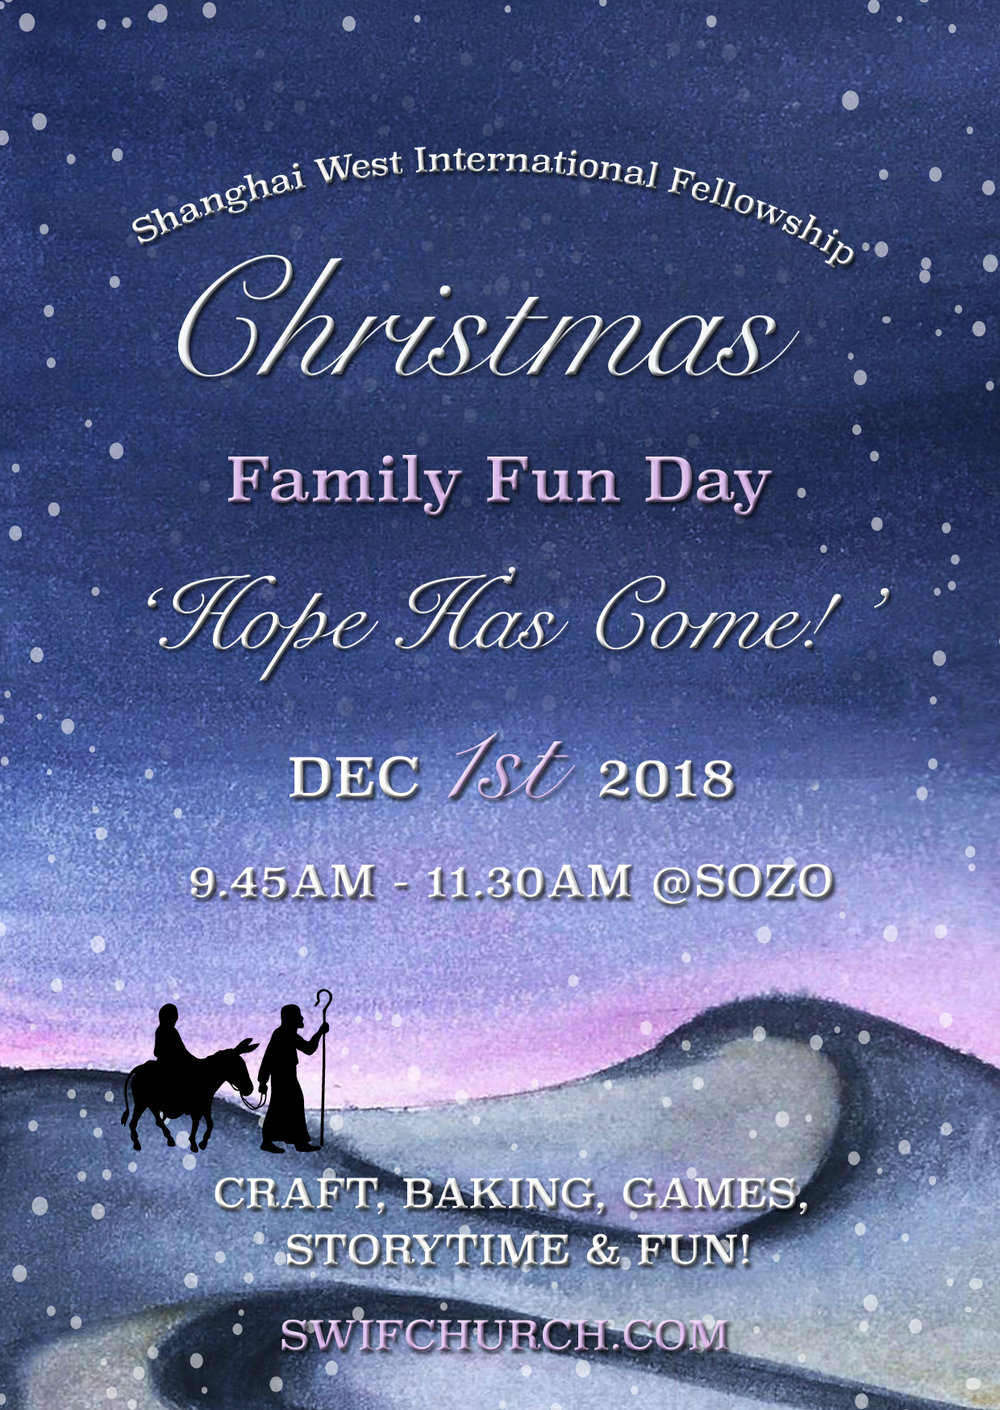 2018 CHRISTMAS FAMILY FUN DAY FLYER P1.jpg